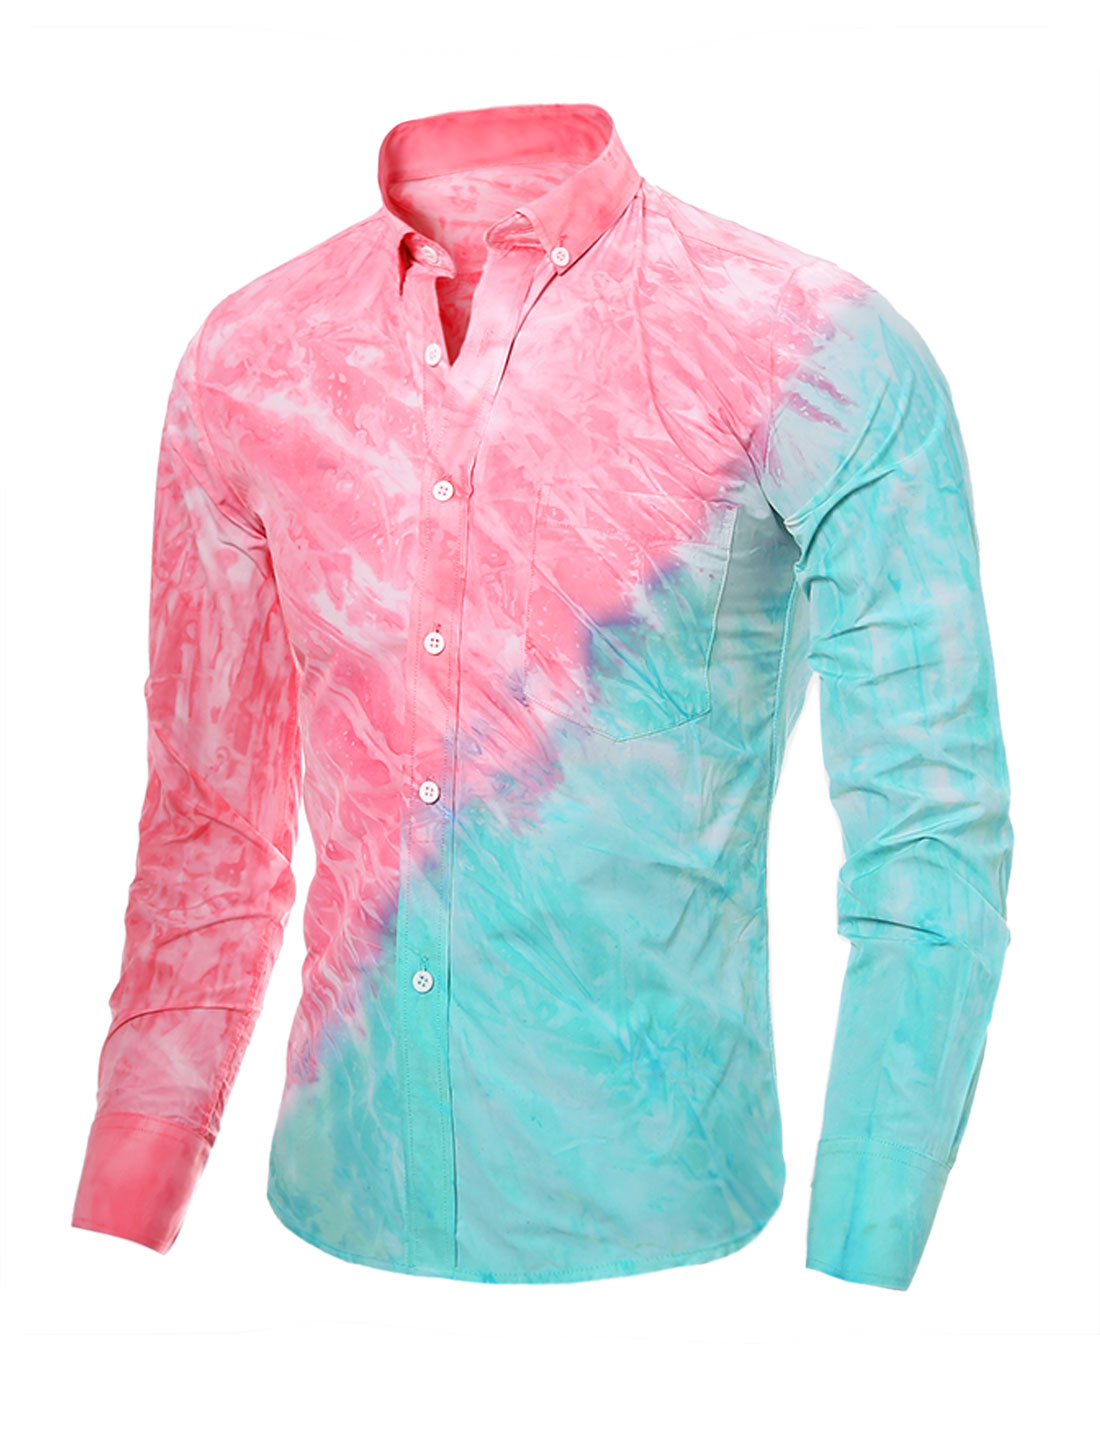 Man Pinpoint Slim Fit Tie-Dye Shirt w Pocket Pink Blue S